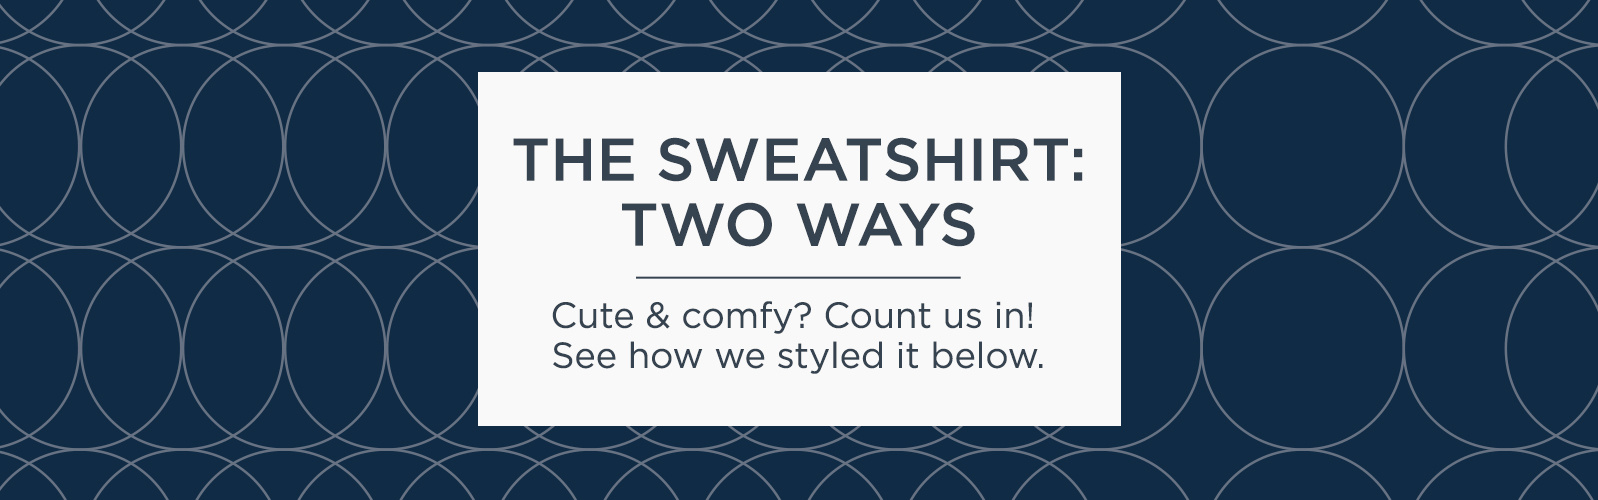 The Sweatshirt: Two Ways  Cute & comfy? Count us in! See how we styled it below.